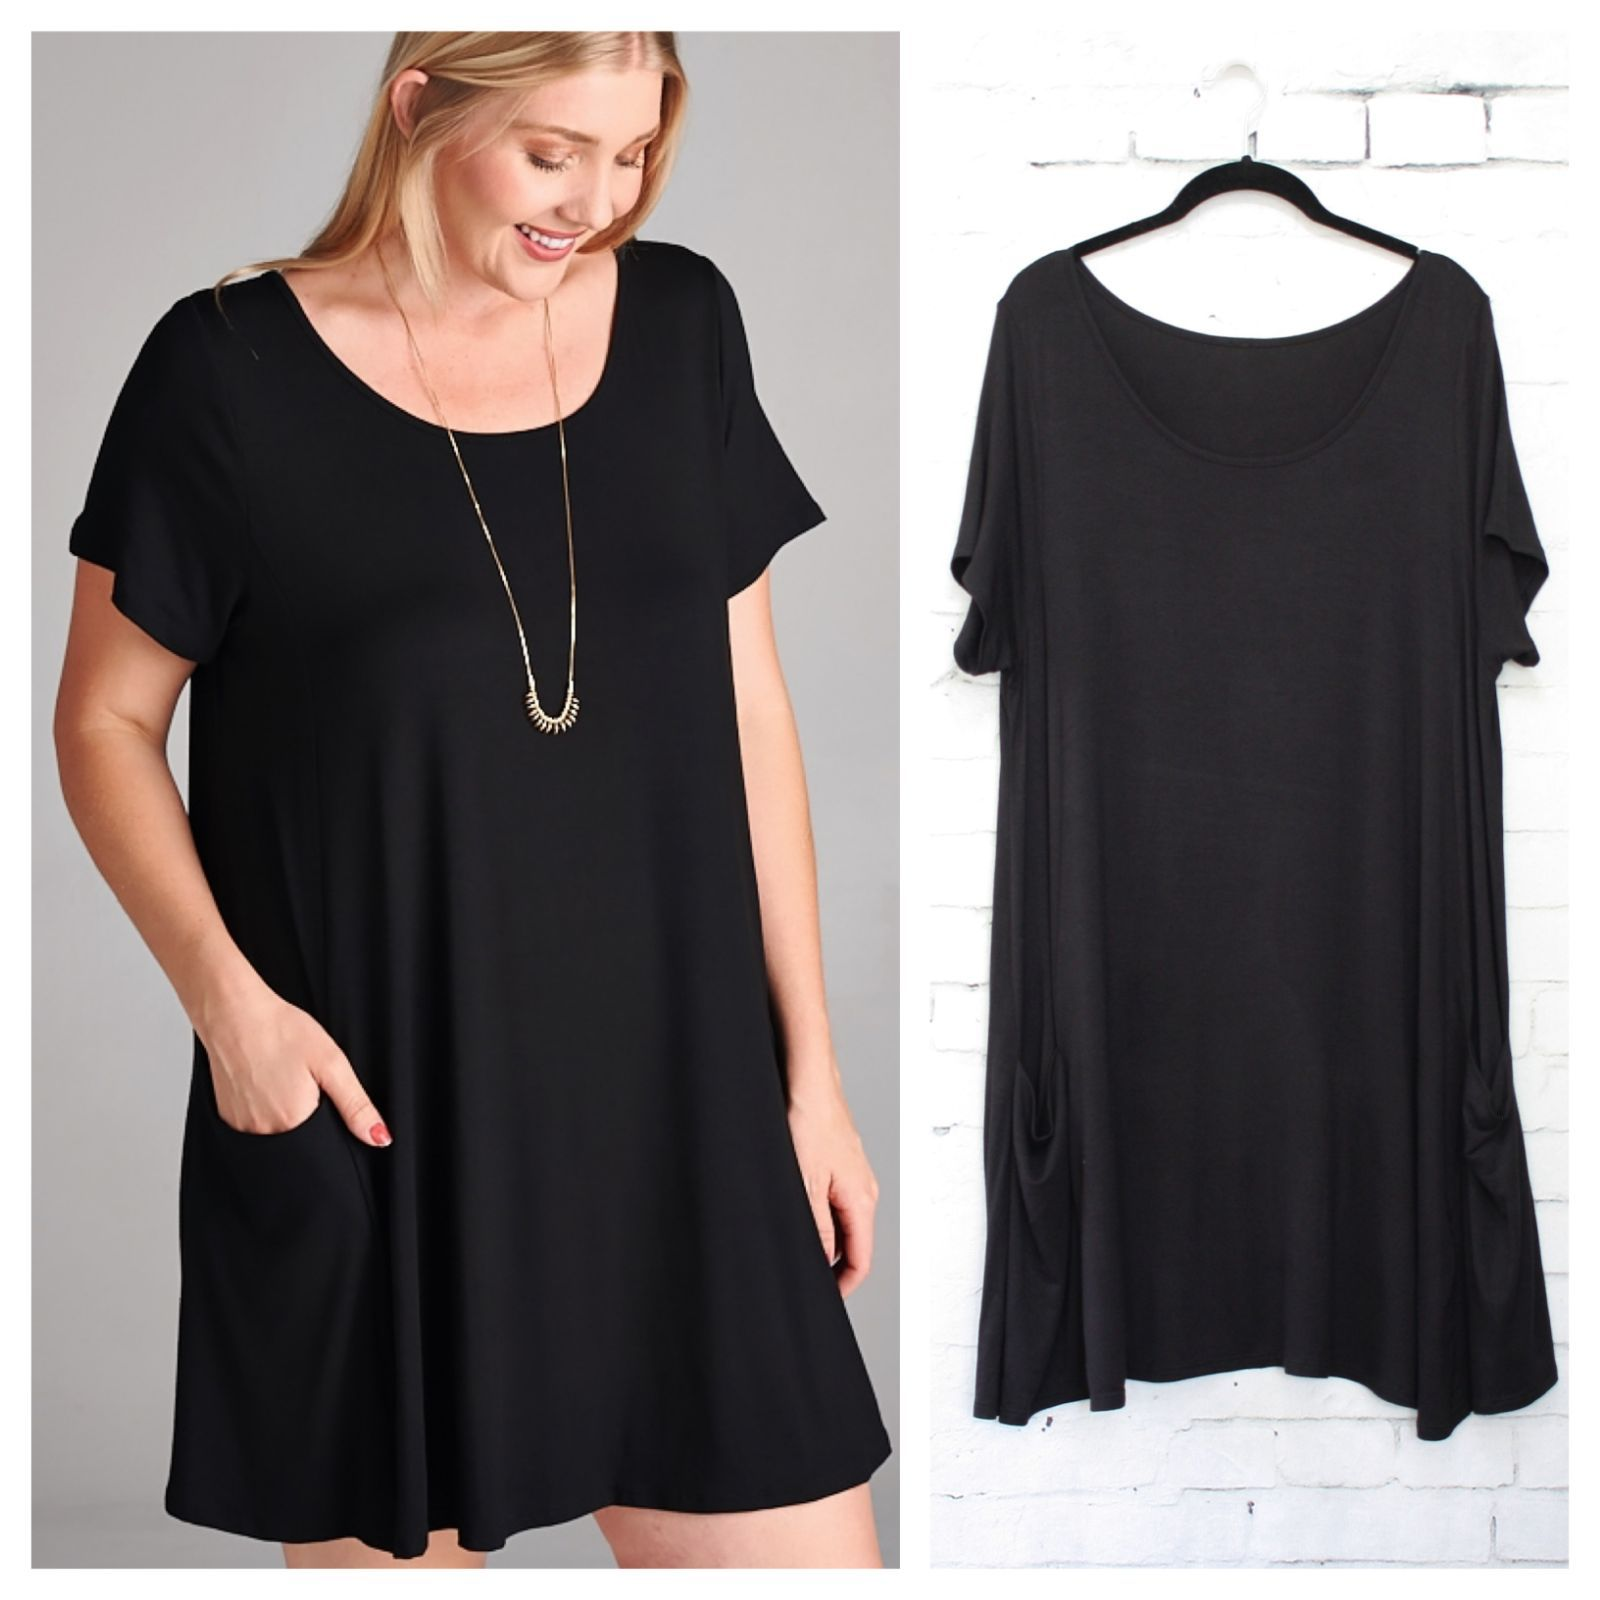 Black Dress Has Short Sleeves And Front Side Pockets Loose And Comfortable Soft Jersey Fabric Measure Black Short Sleeve Dress Short Sleeve Dresses Dresses [ 1600 x 1600 Pixel ]